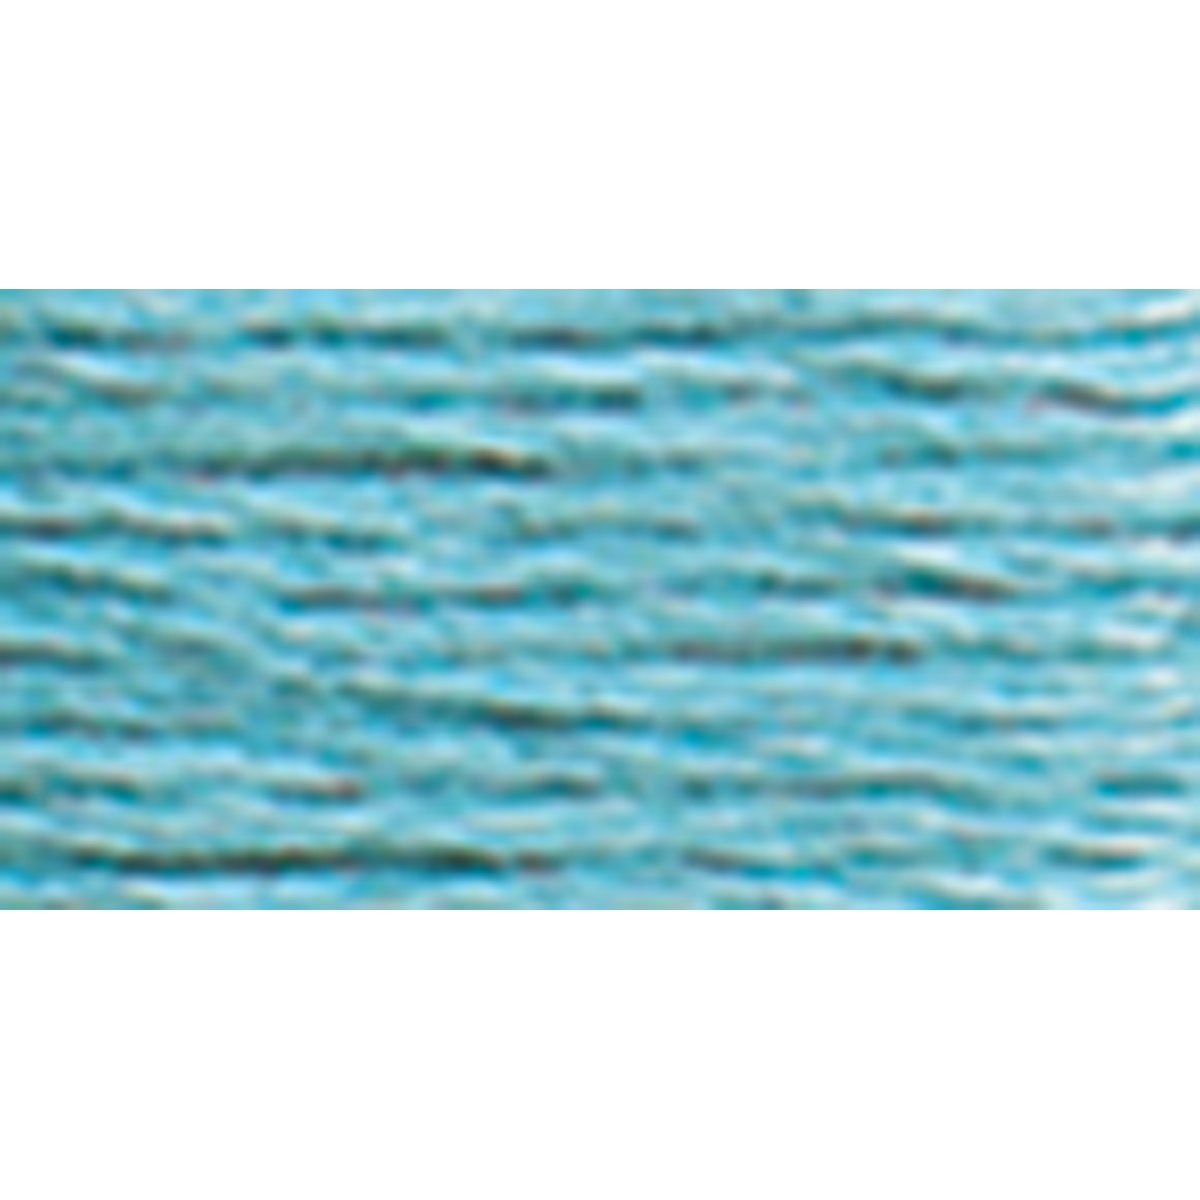 Light Baby Blue 8.7-Yard DMC 117-3756 Mouline Stranded Cotton Six Strand Embroidery Floss Thread